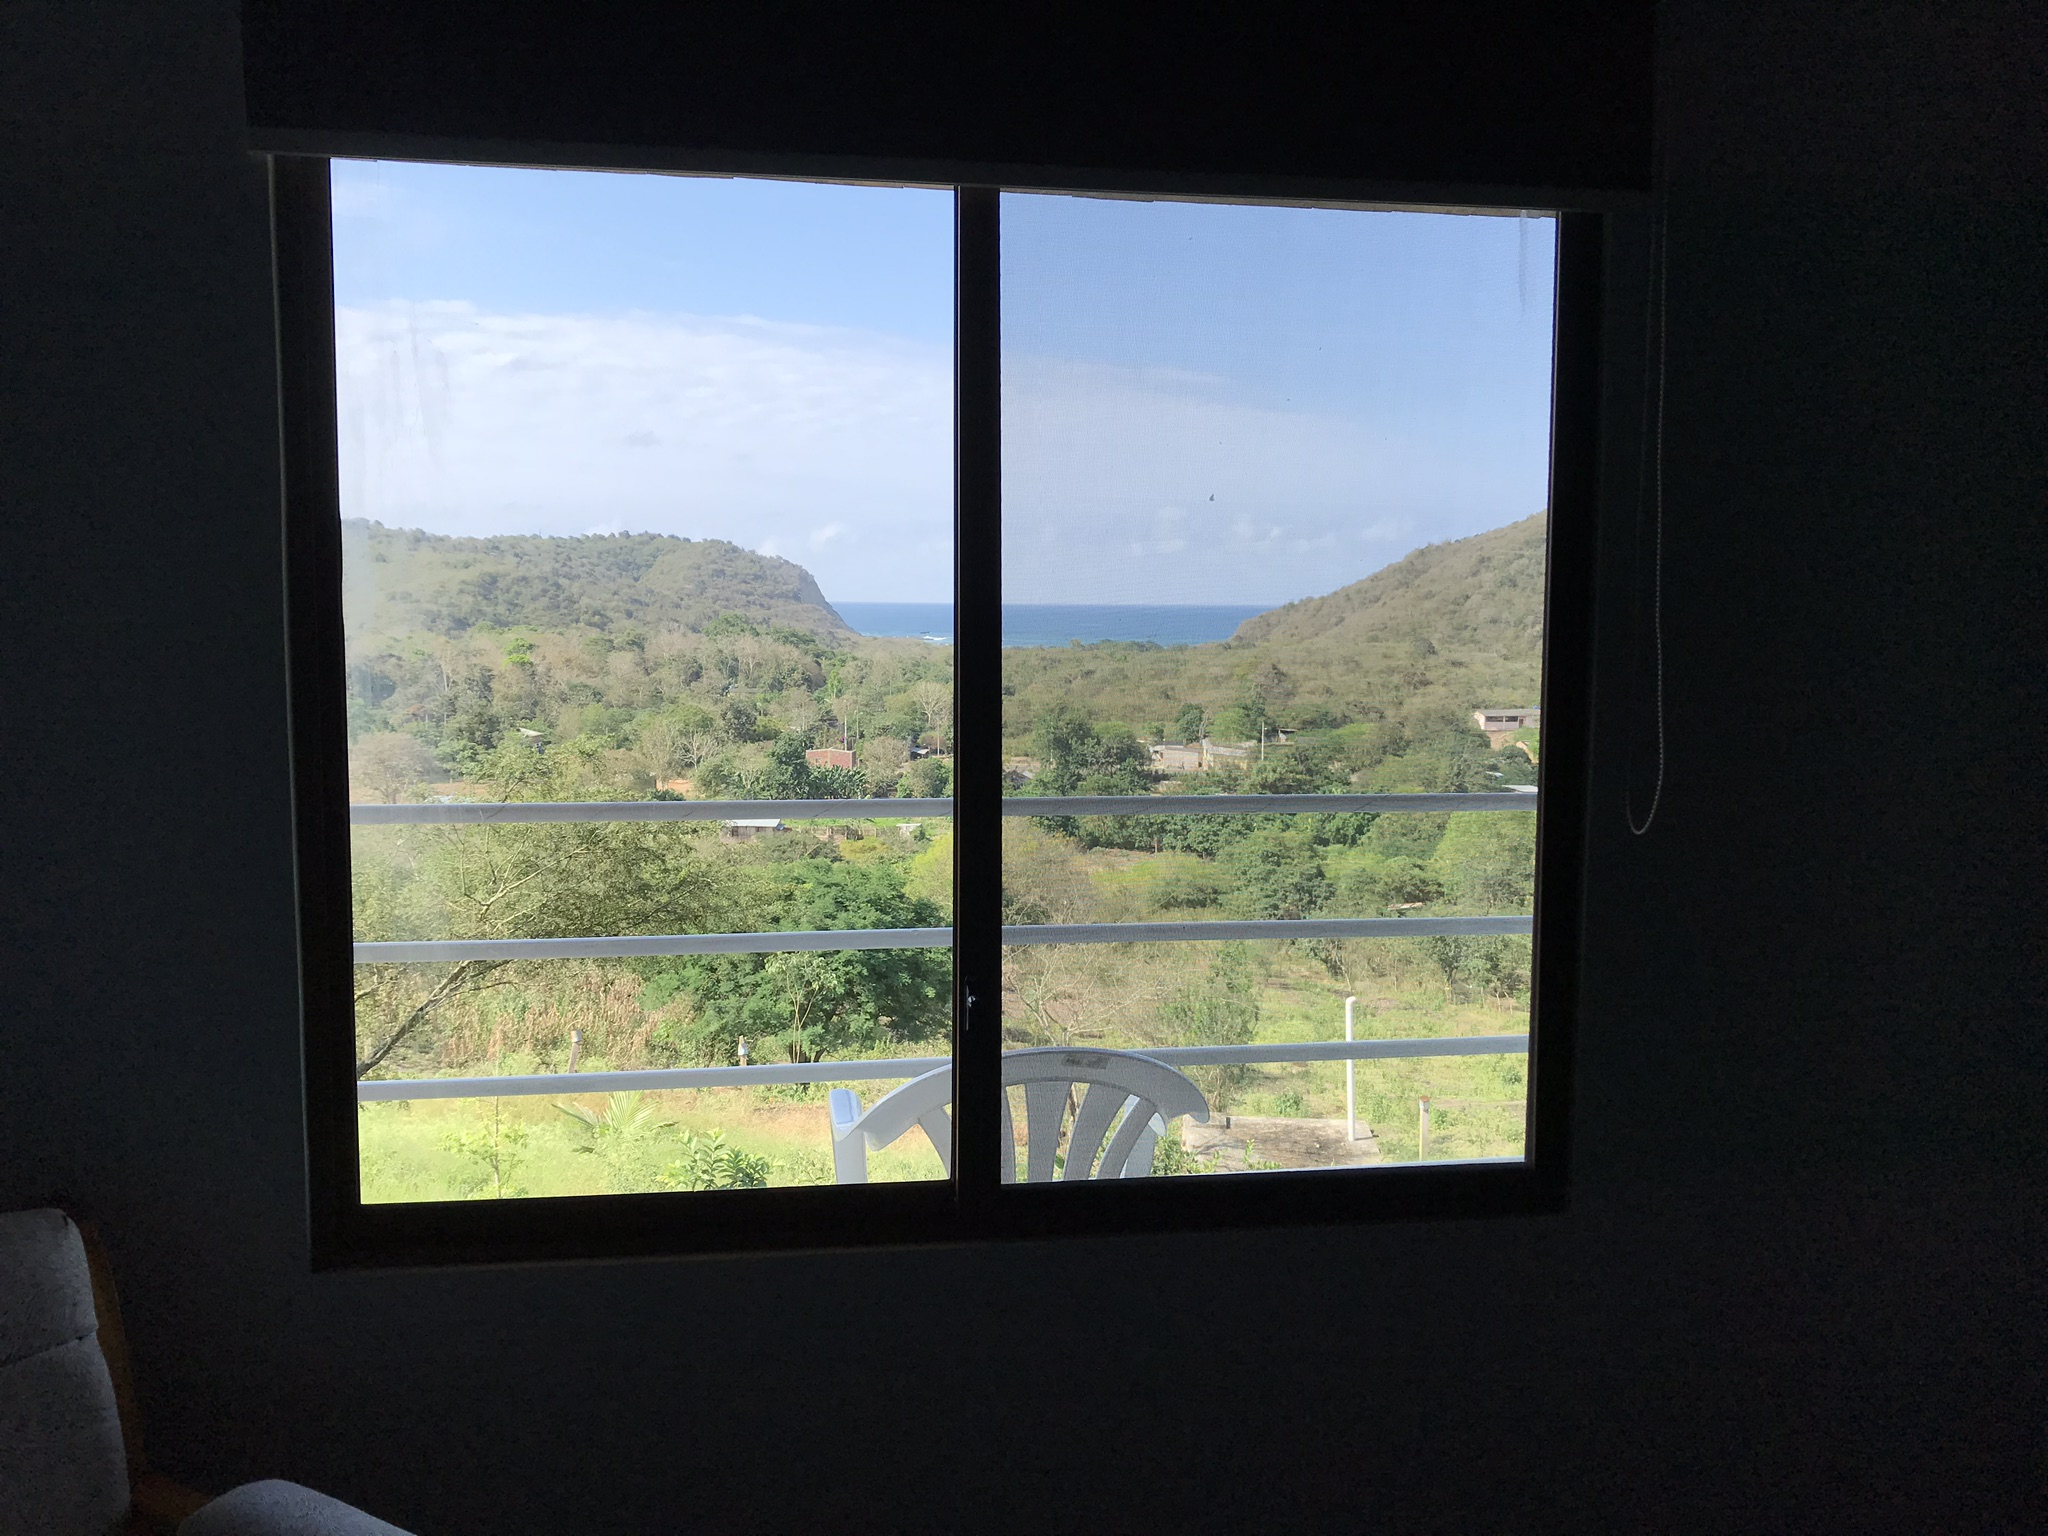 Wake up to this view every day